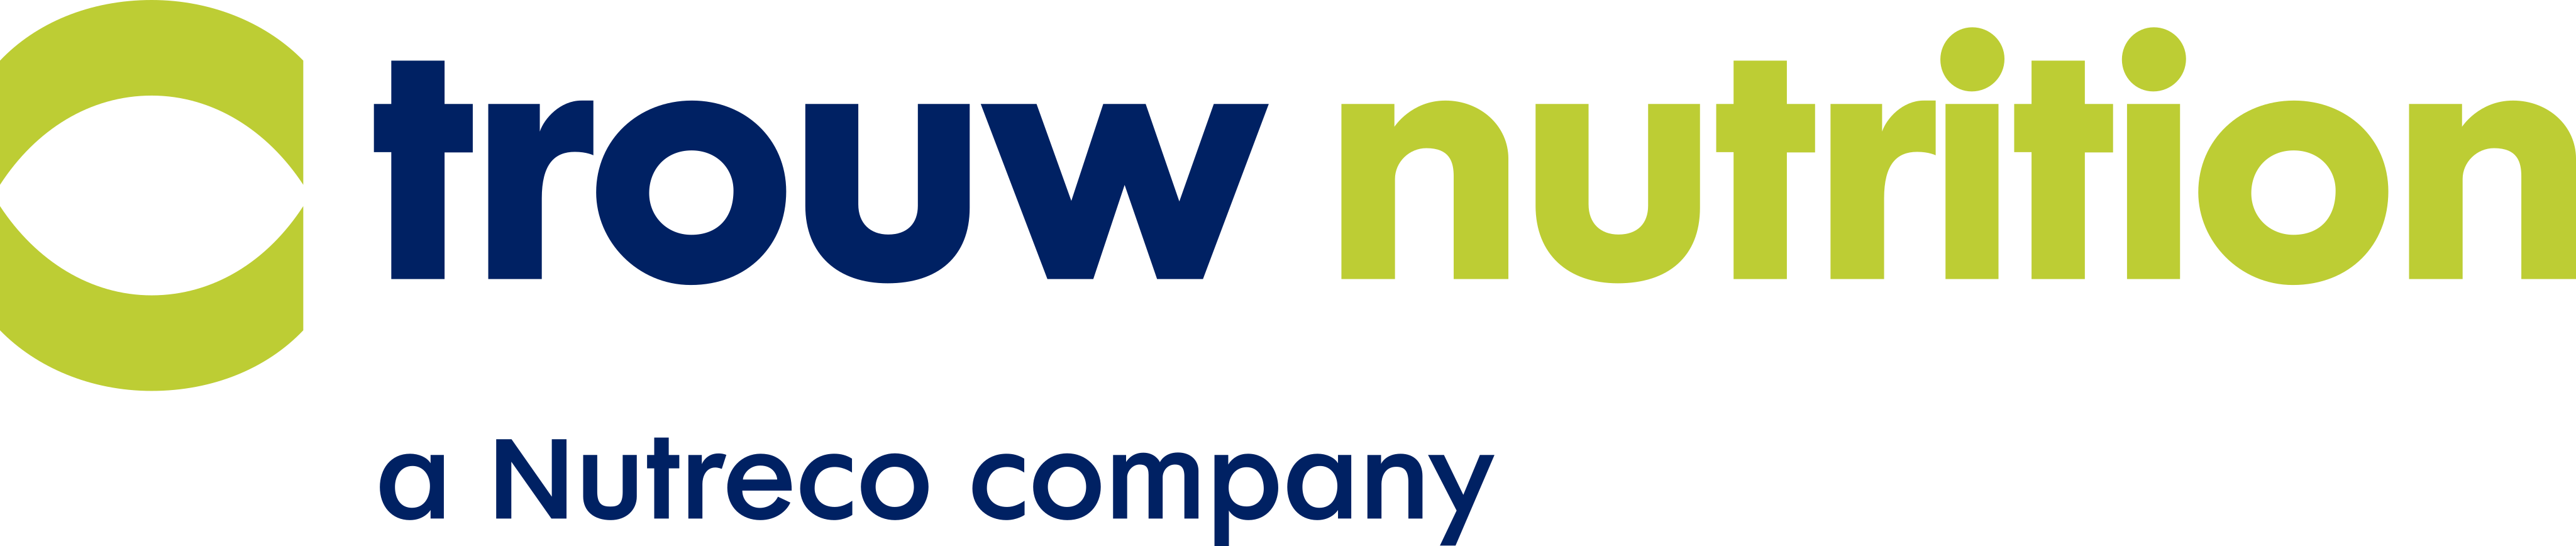 Trouw Nutrition Logo.